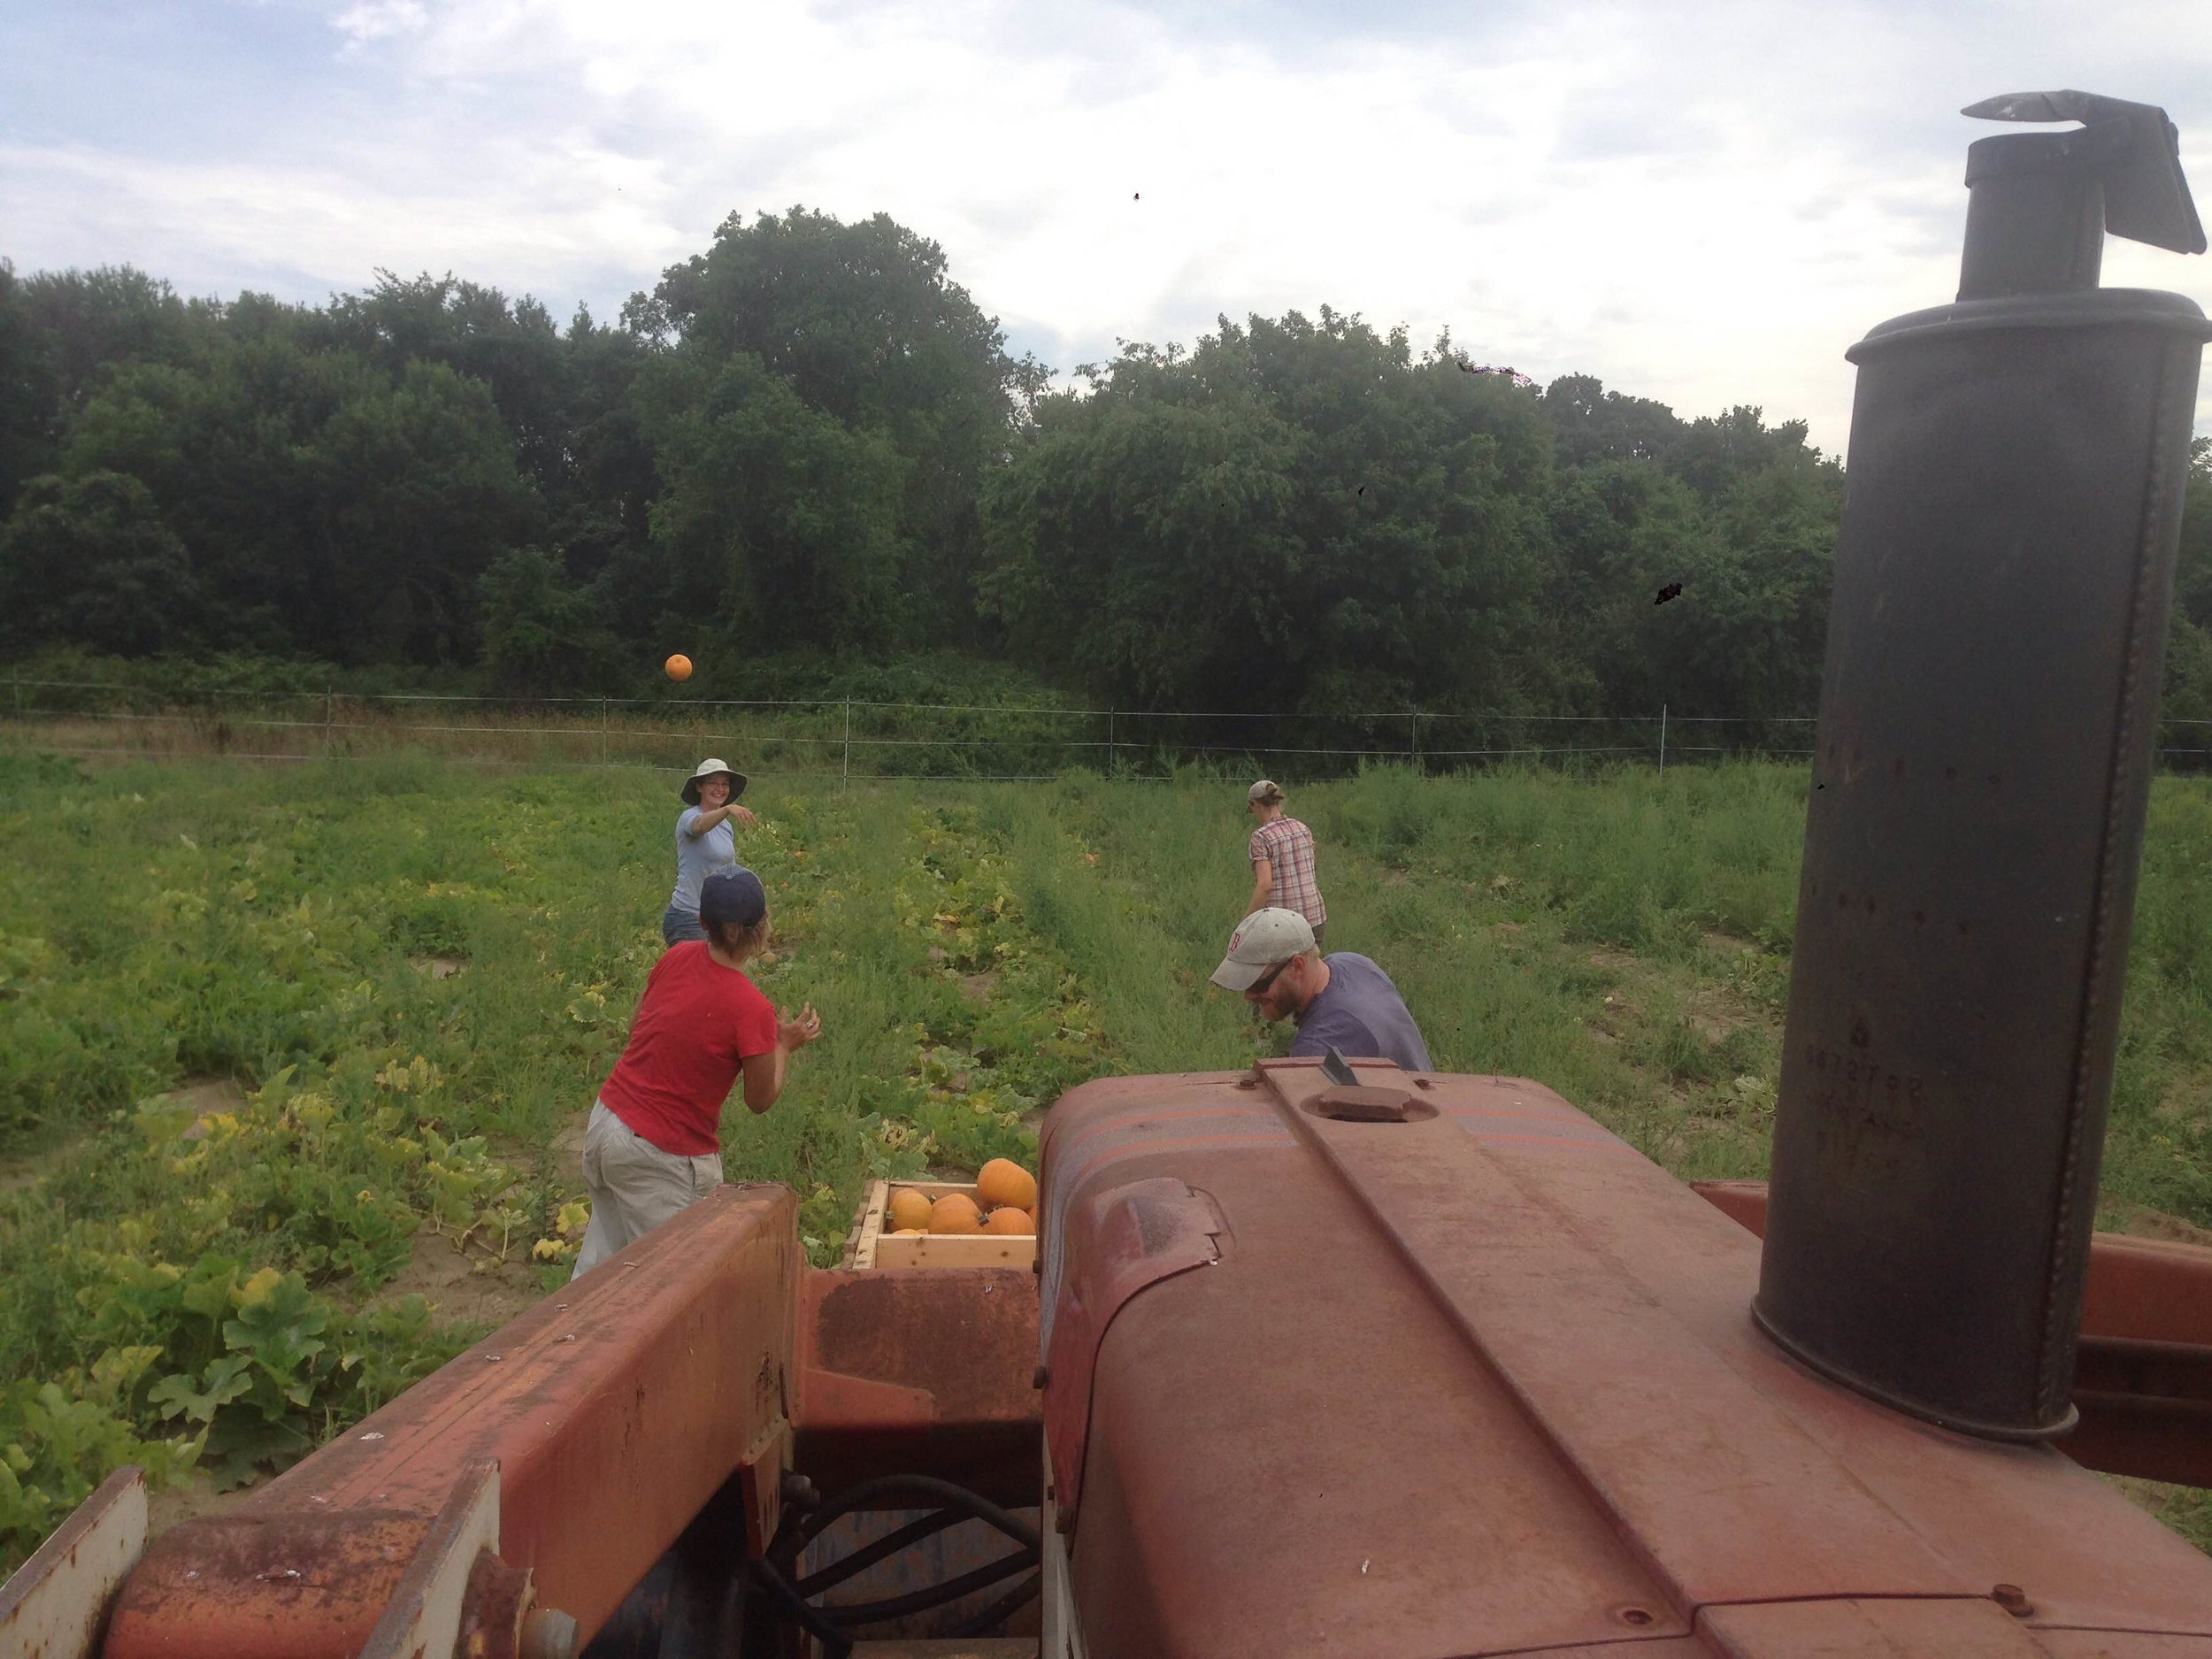 Winter squash harvest is one of our favorite late summer activities. One person drives the tractor with a bulk bin on the front forks while some of the crew picks up squash and tosses them to another crew member to transfer into the bulk crate. The bulk crates are then stored in the barn for a few weeks to let the squash cure.